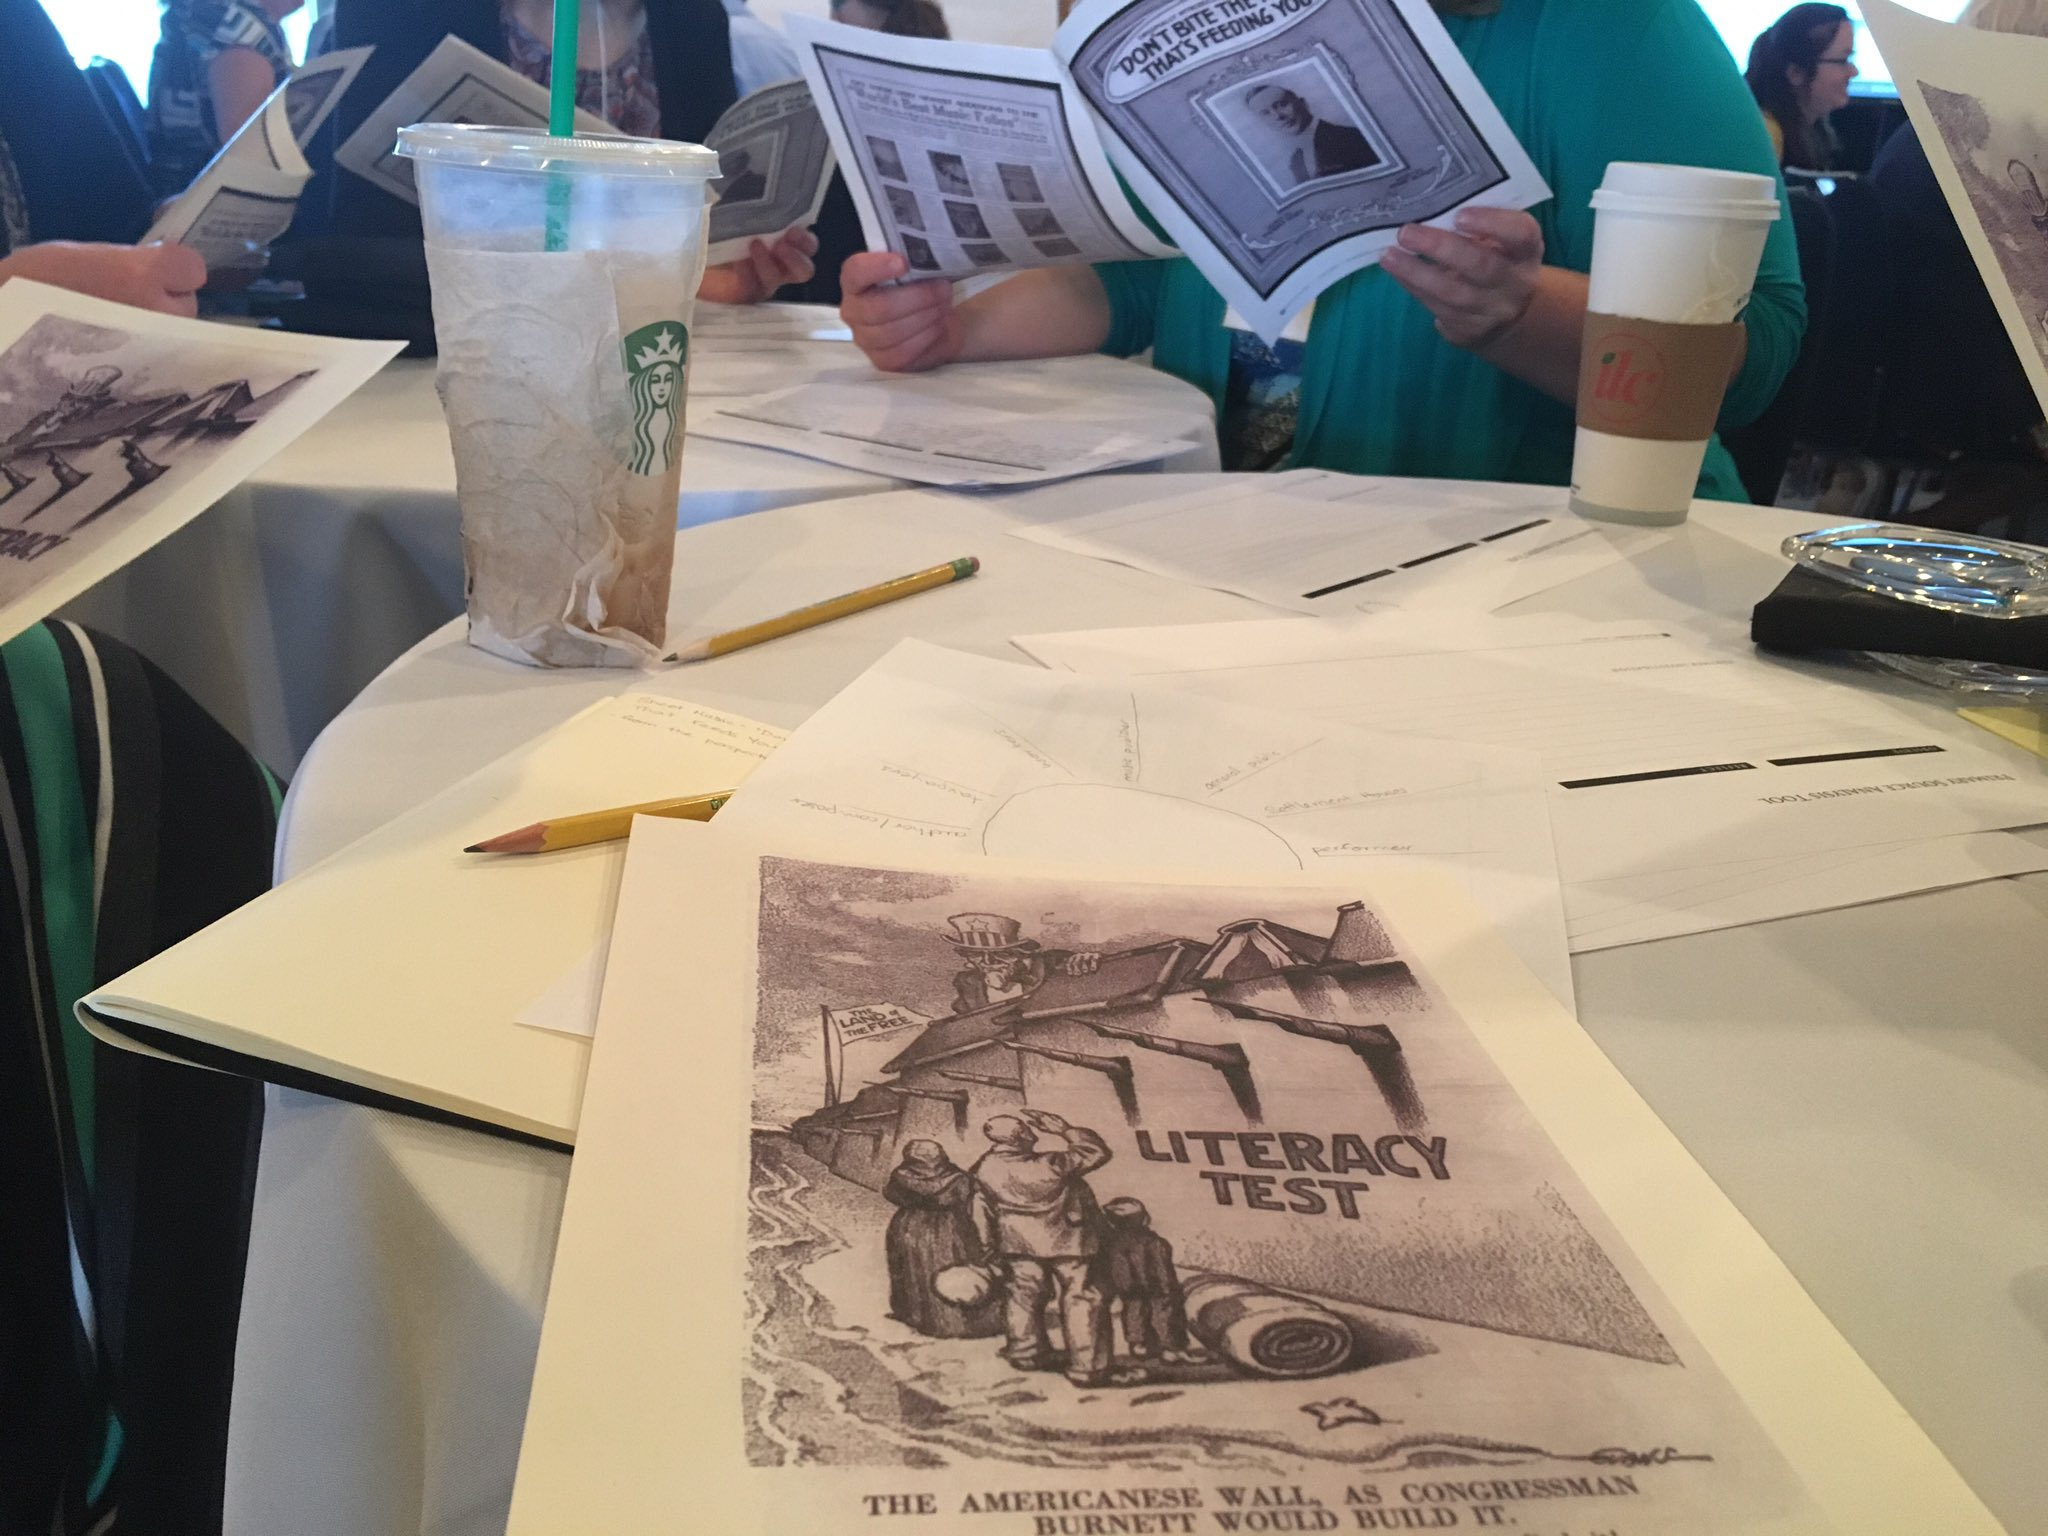 Looking at different perspectives in primary sources today with #LCTeachInst at @librarycongress https://t.co/K9OtcPW8jG